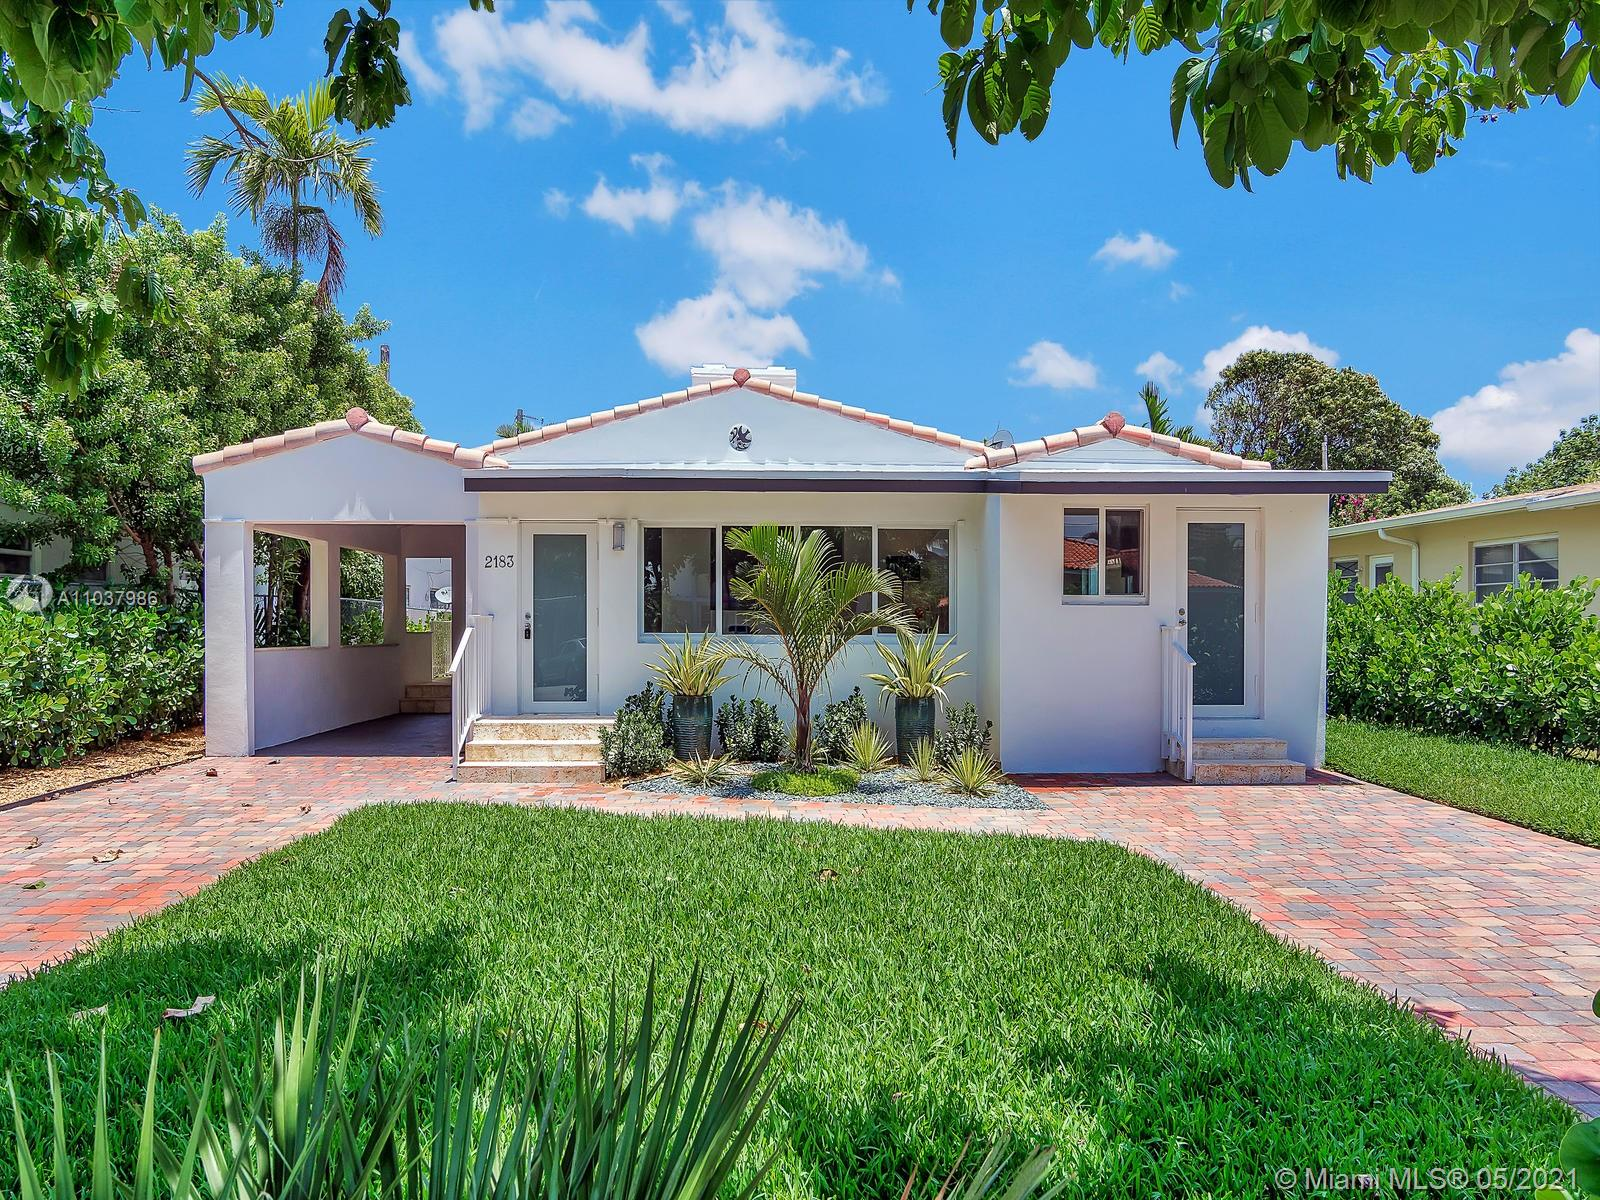 Beautiful fully renovated DUPLEX (Total 2600sqft, 1900sqft front house and 700sqft back apt.for the owner). The front house is a 3 bedroom/ 3,5 bathroom, and the back house is a 1 bedroom/ 1 bathroom. New hurricane impact windows, new bathroom, new kitchens, new tiles floors. Everything has been renovated to the state of art.